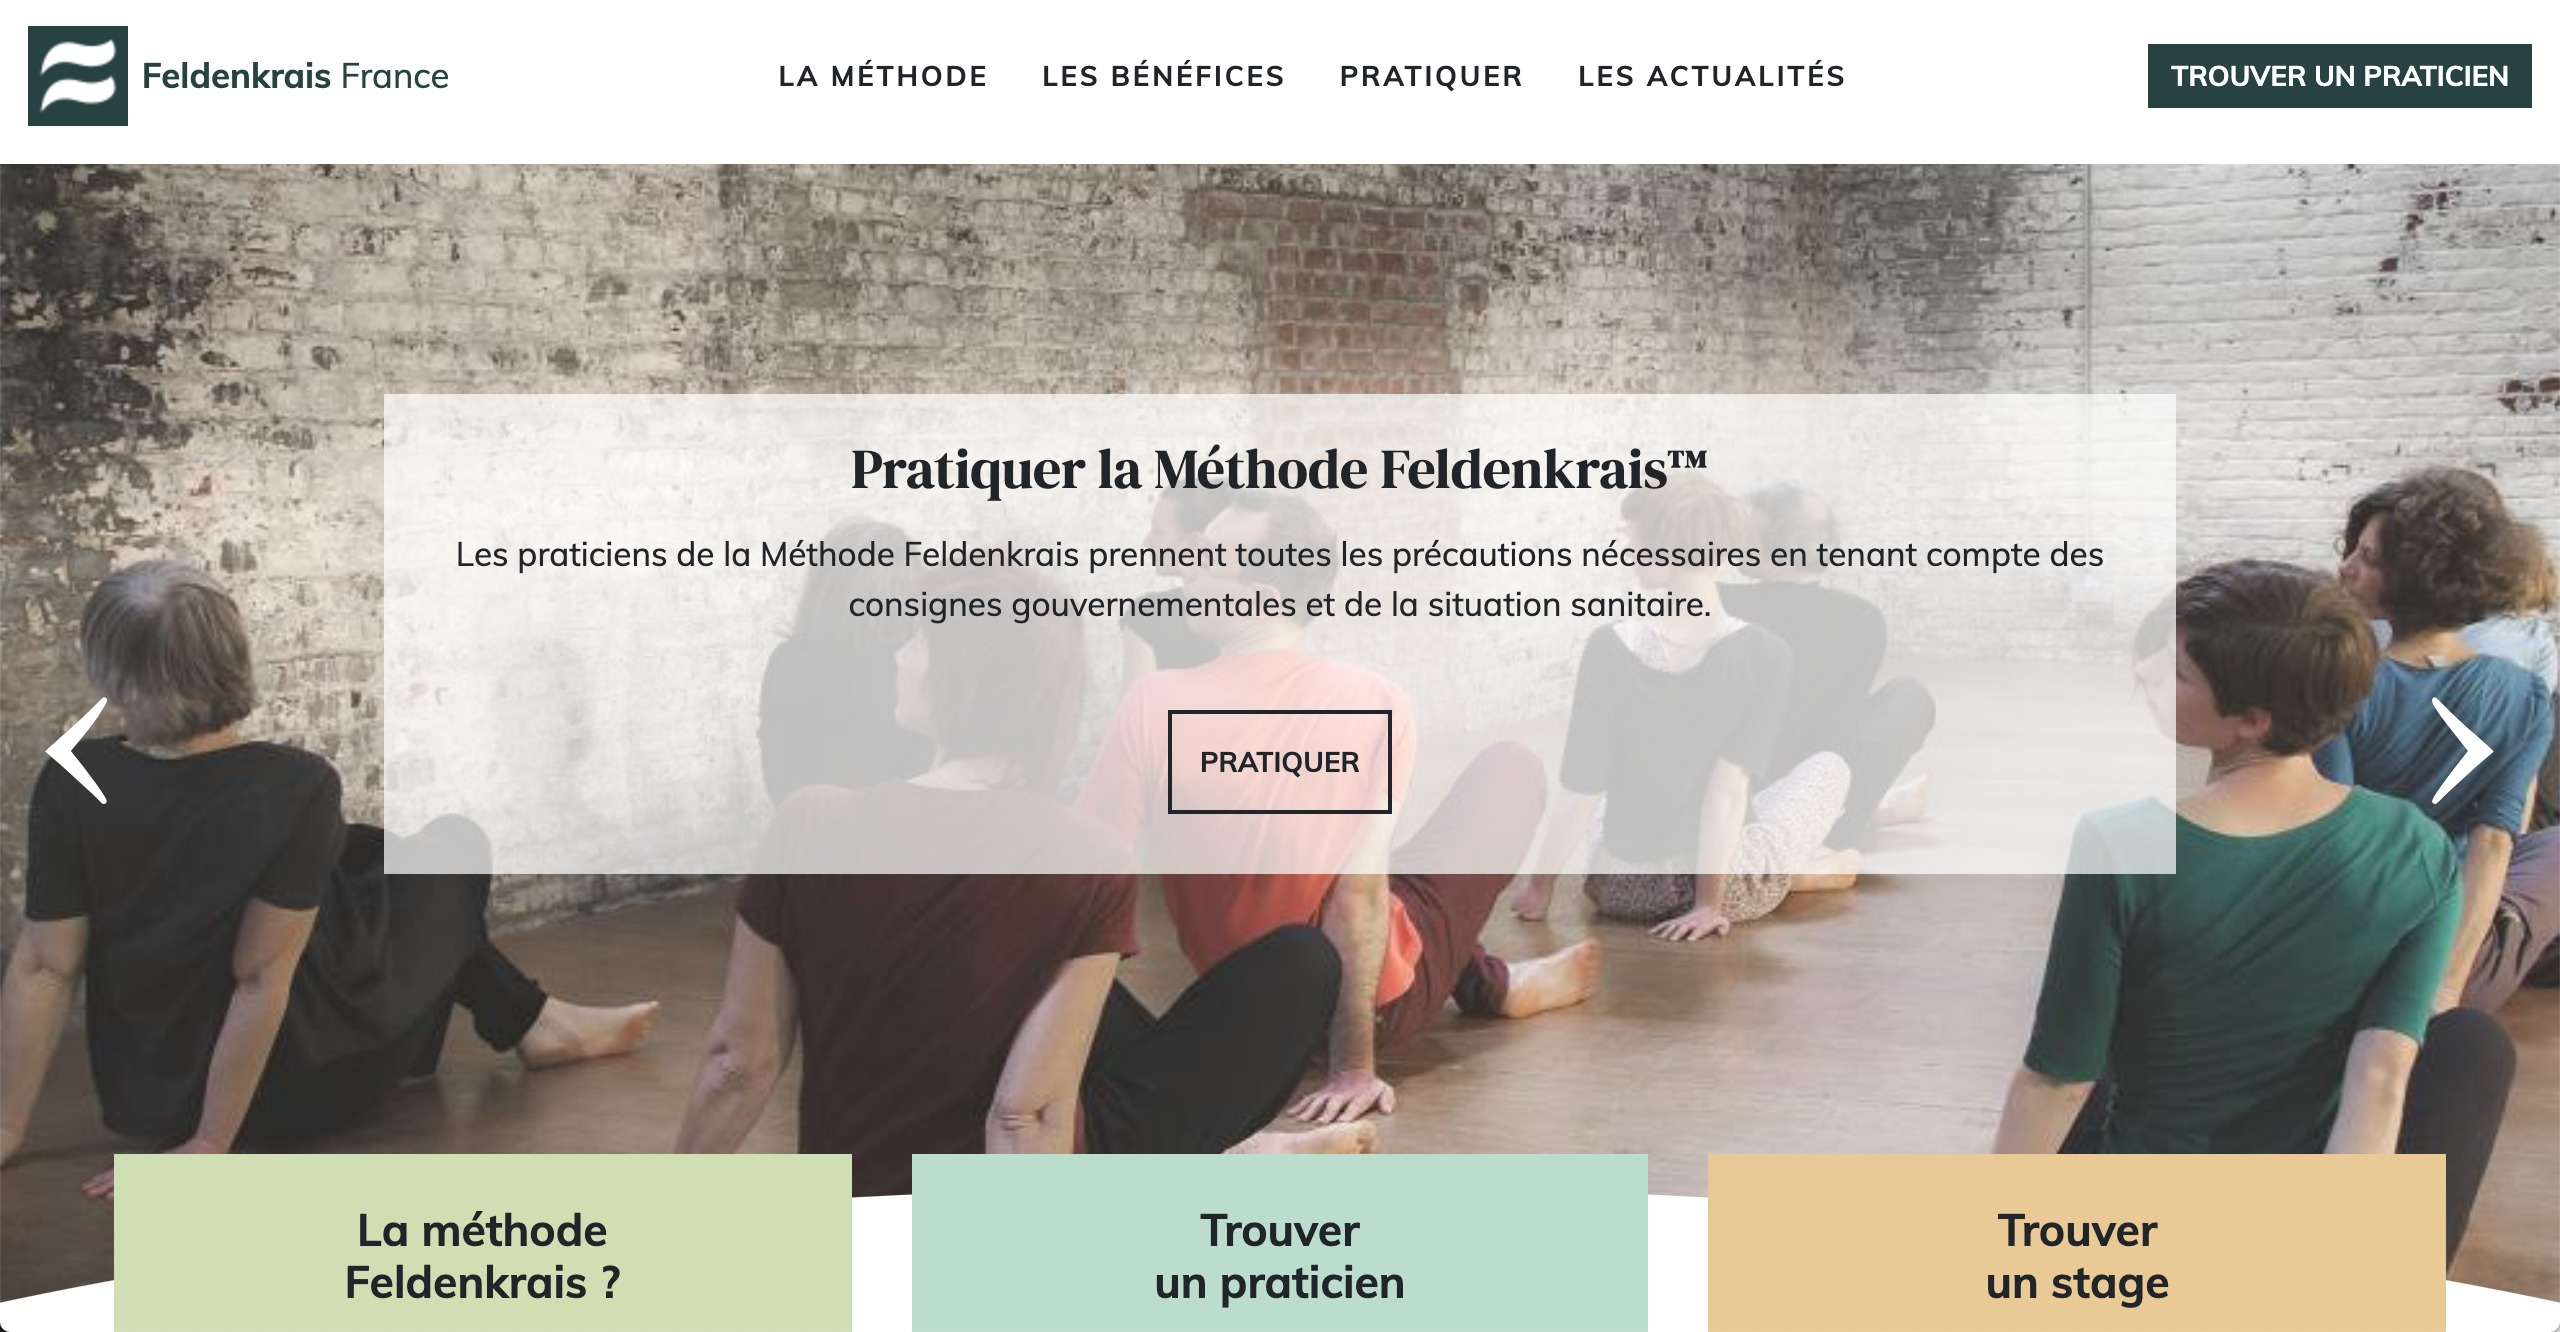 Site de l'association Feldenkrais France